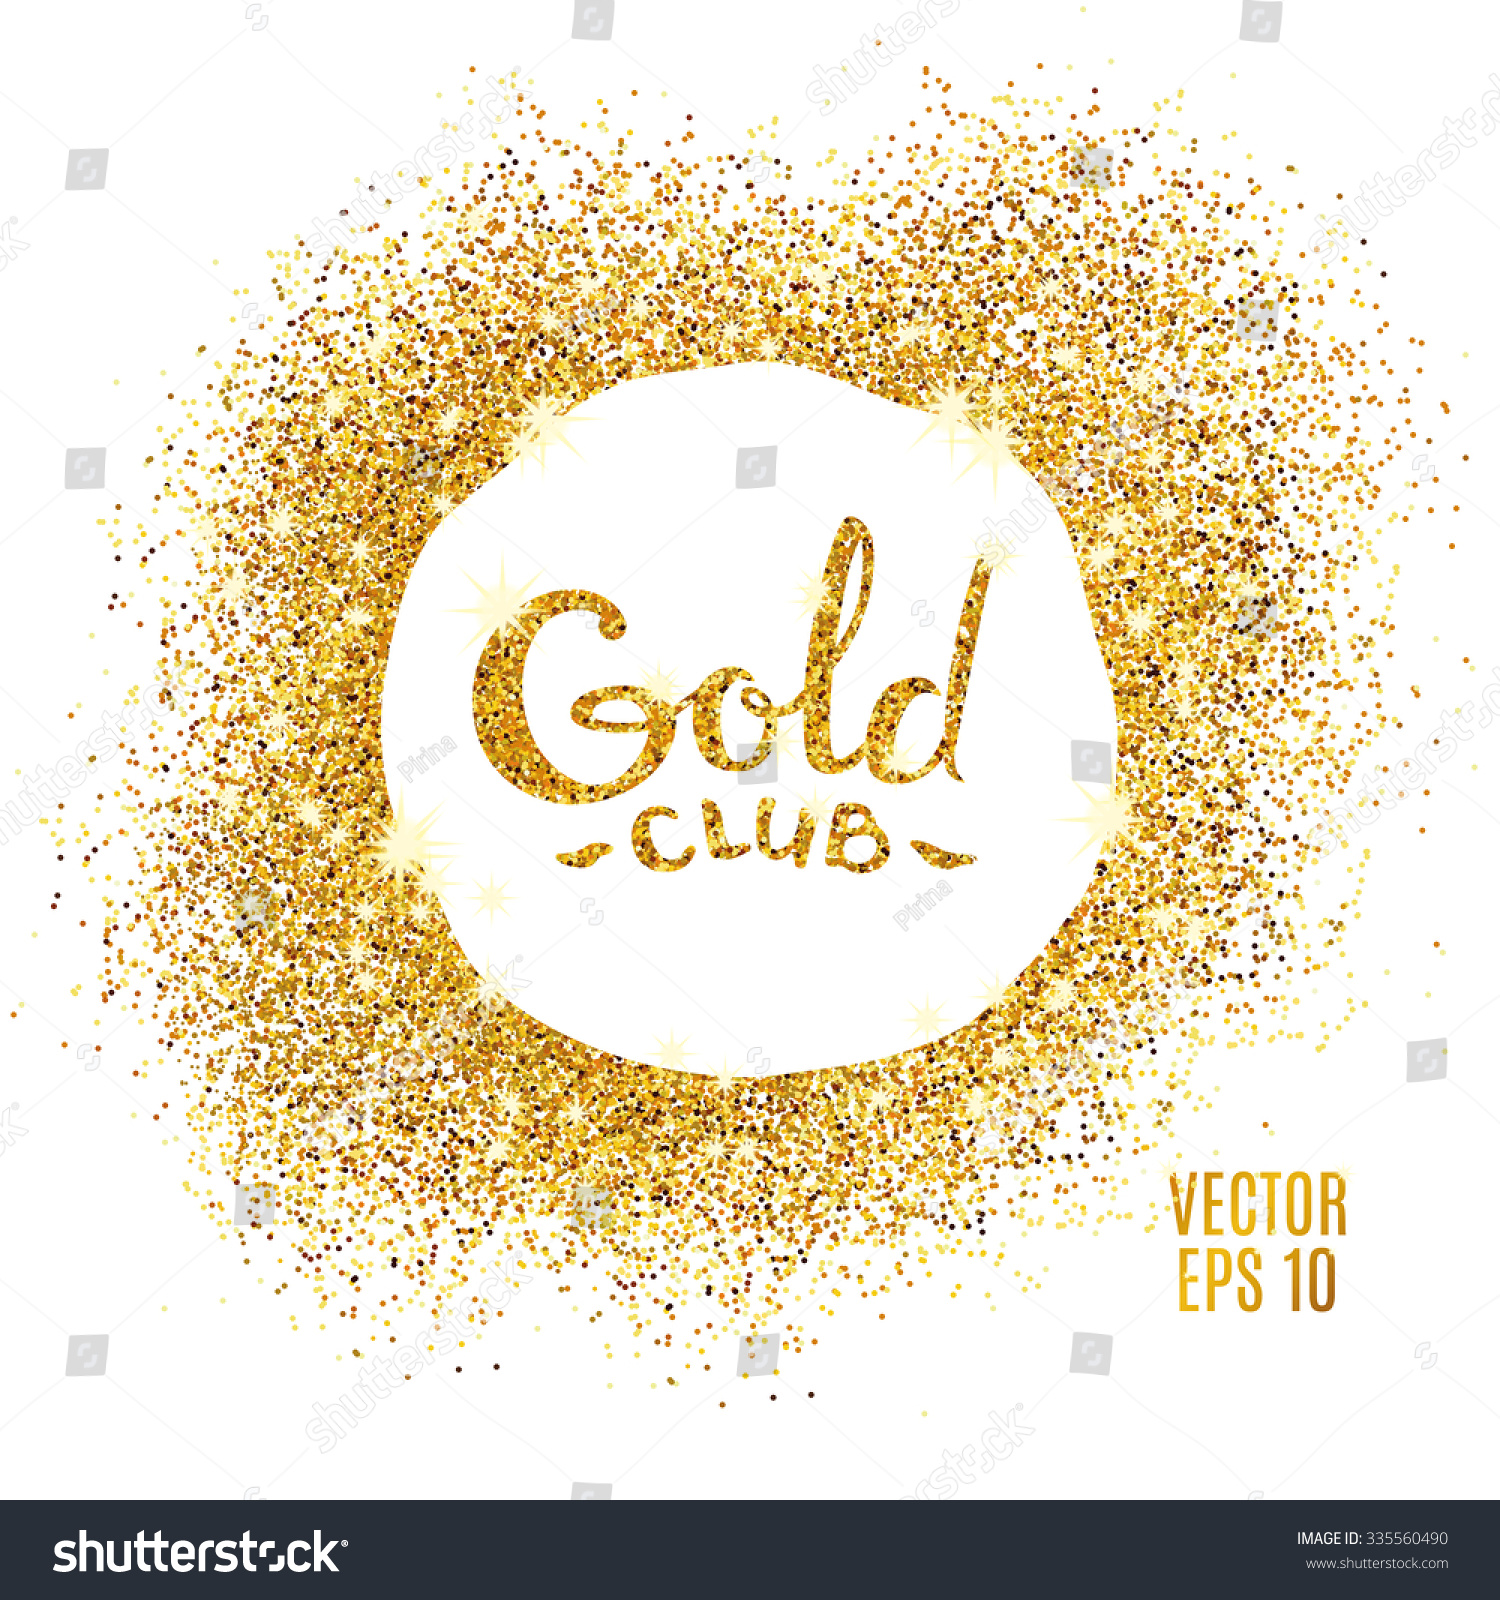 Gold glitter bright vector transparent background golden sparkles - Gold Sparkles On White Background Gold Glitter Background Golden Club Logotype Logo